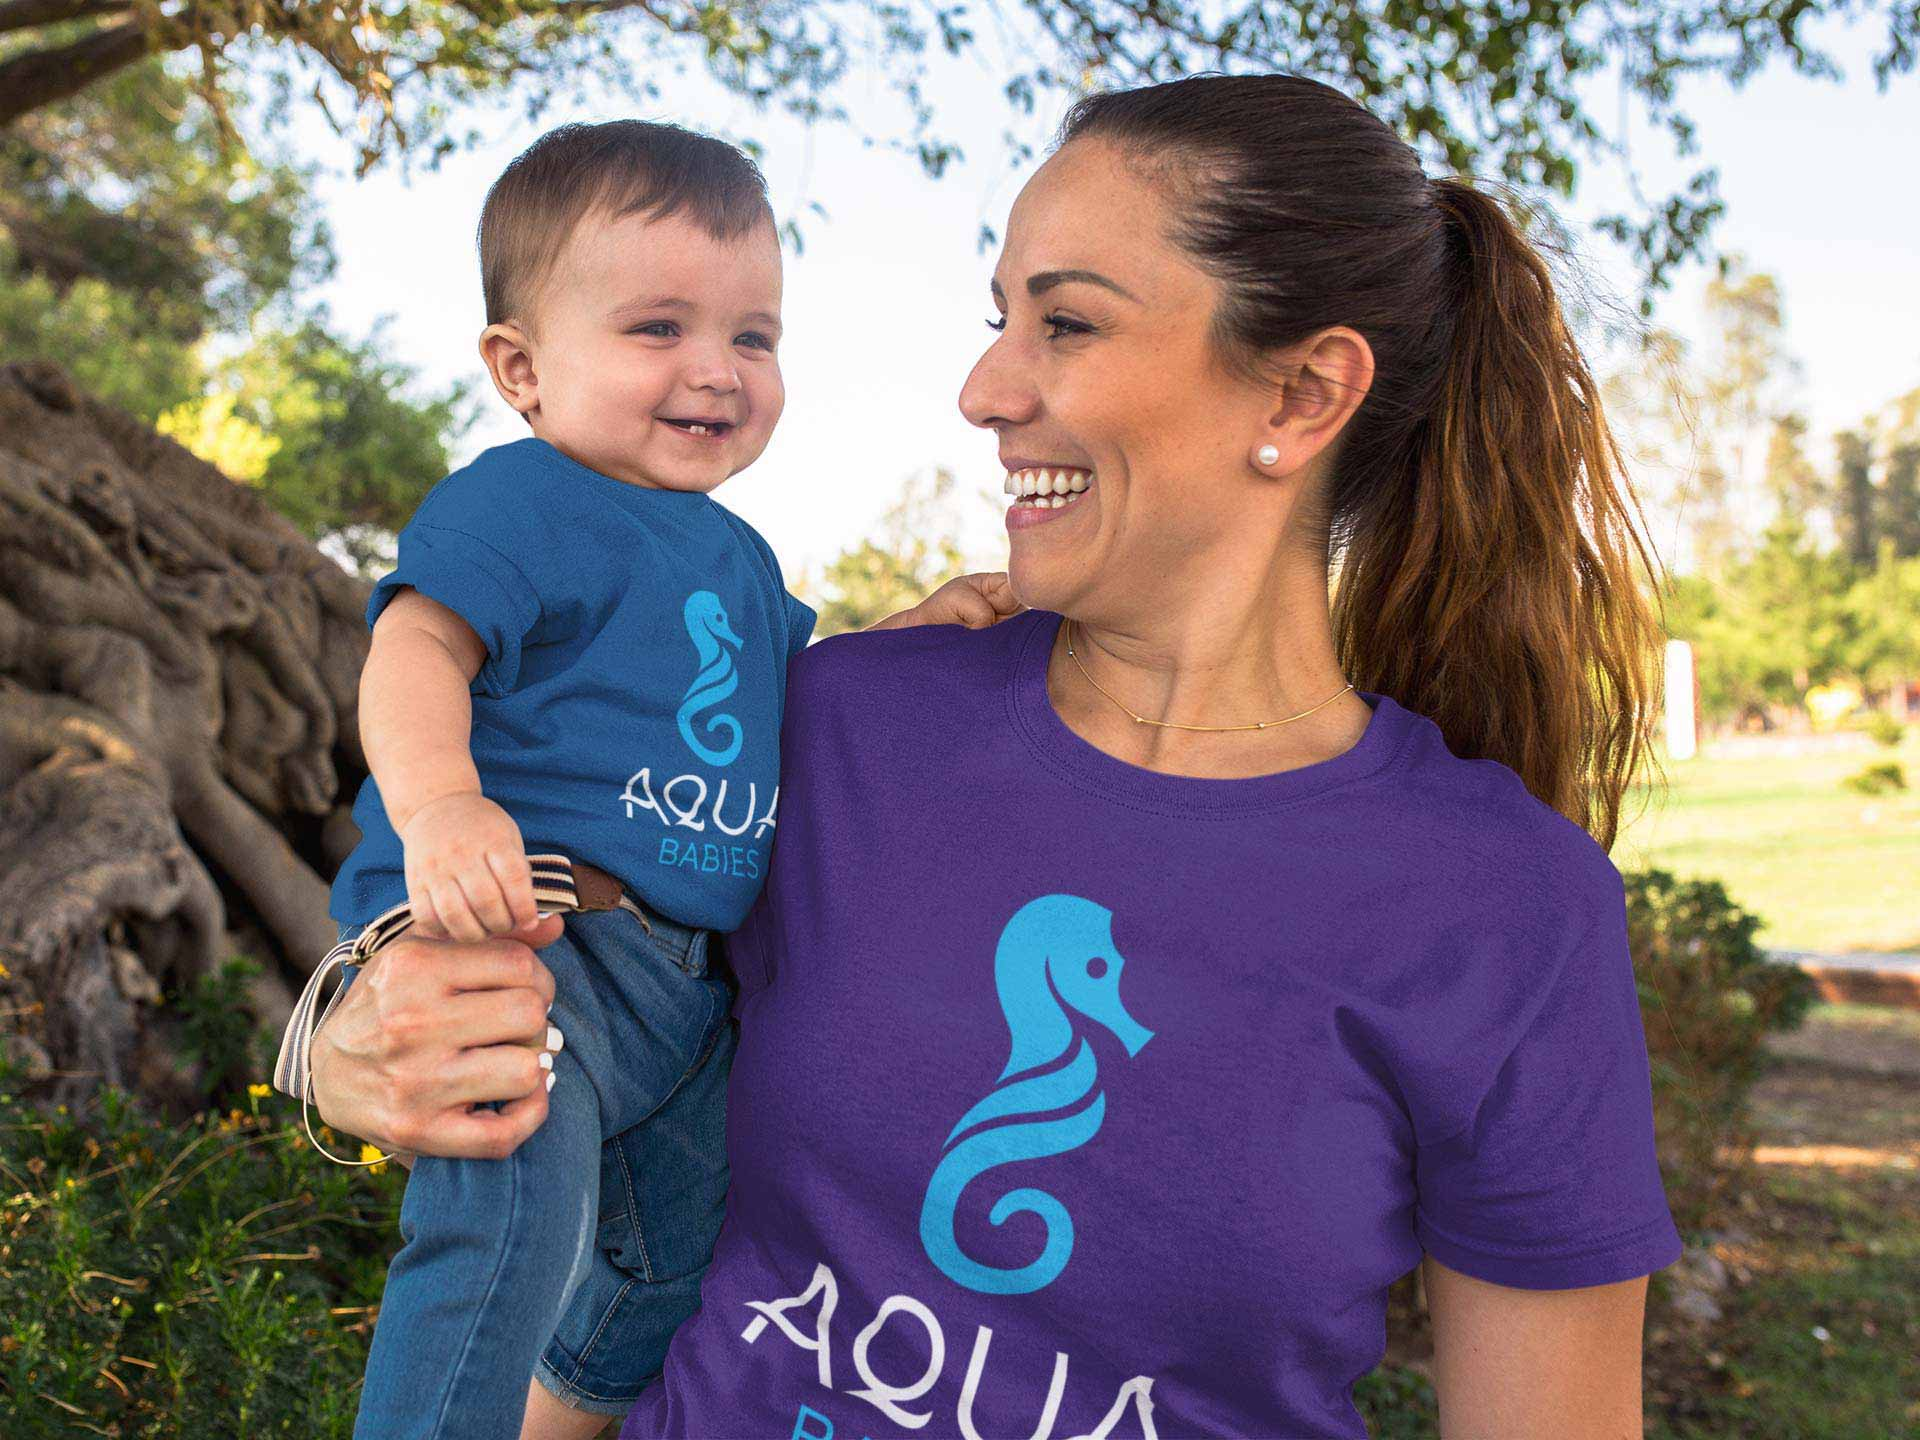 Parent and child with Aqua Babies logo redesign on tshirts